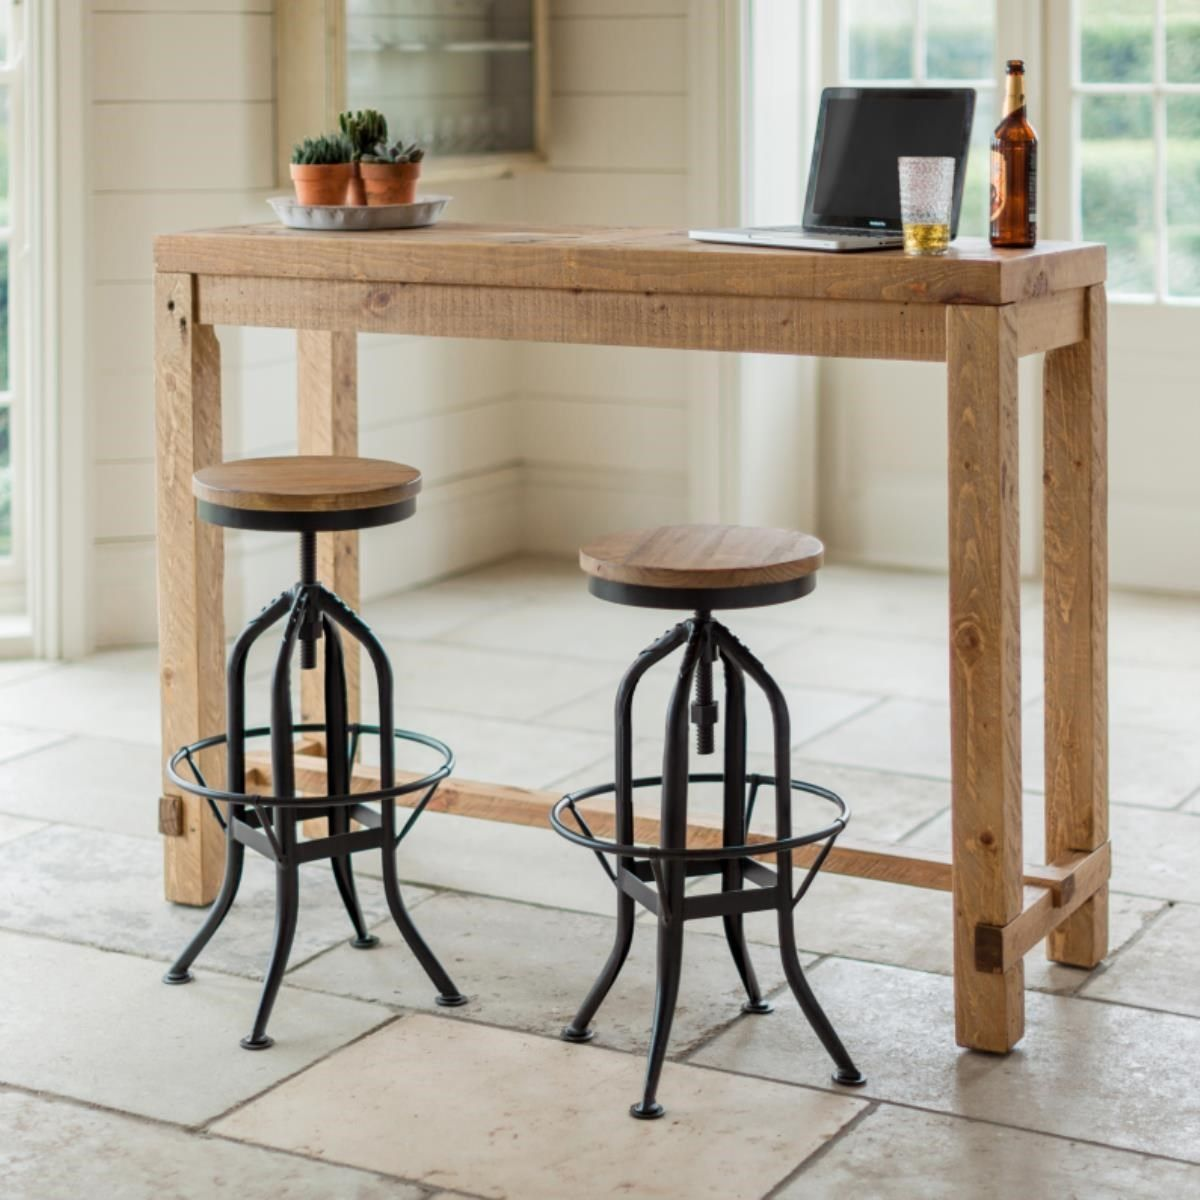 A tall bar table handcrafted from reclaimed pine in a contemporary a tall bar table handcrafted from reclaimed pine in a contemporary design ideal as a breakfast bar or for social occasions handmade in vietnam workwithnaturefo